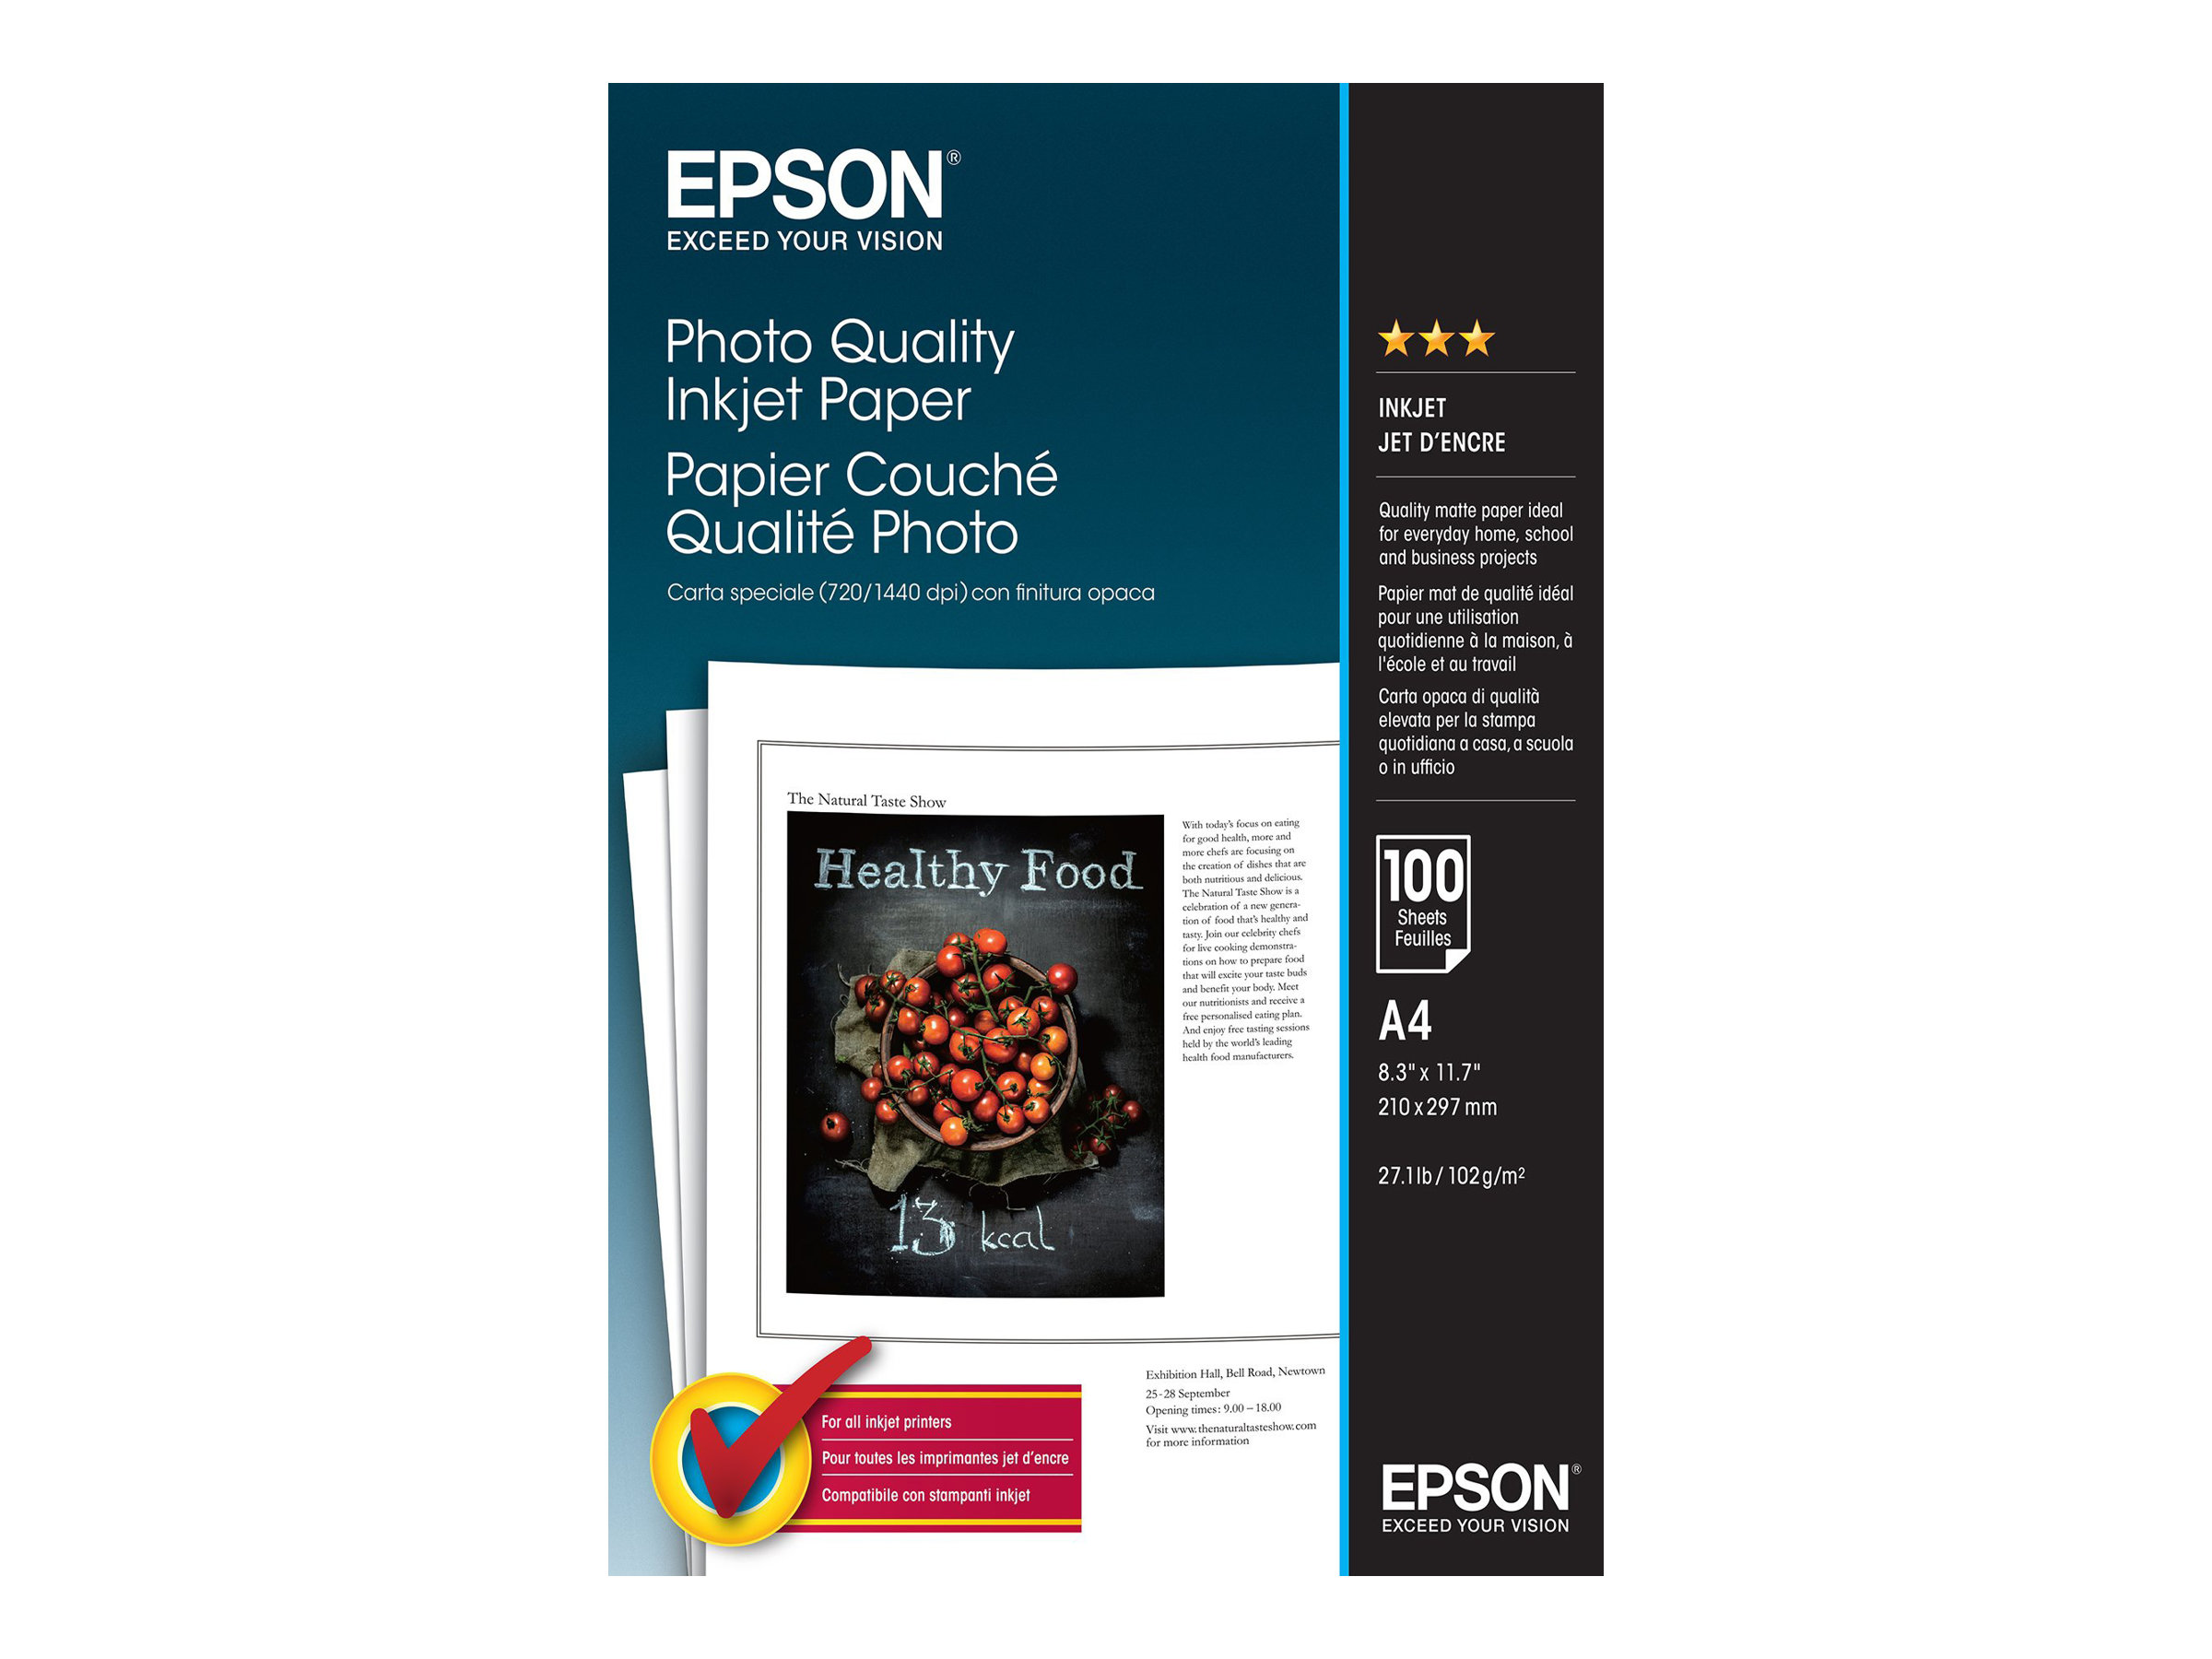 Epson Photo Quality Ink Jet Paper - paper - 100 sheet(s) - A4 - 102 g/m²